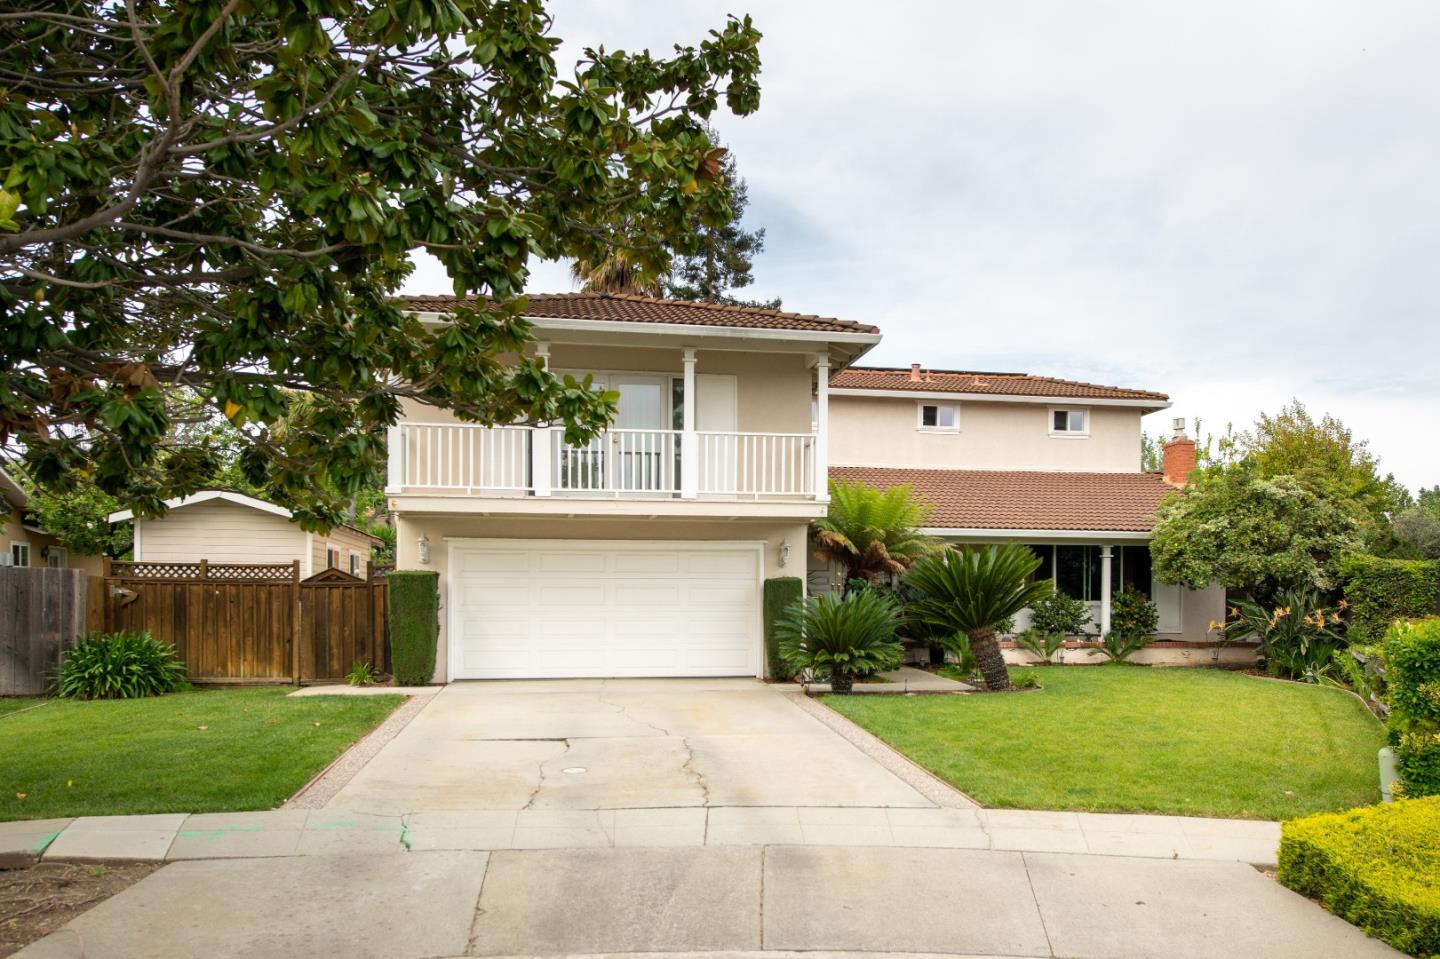 Excellent Location. Located on a Quiet, Tree-lined street. Close vicinity to Almaden Lake, walking trails, light rail, popular Guadalupe Park, shopping and freeways. Top/Award Winning Almaden Schools!